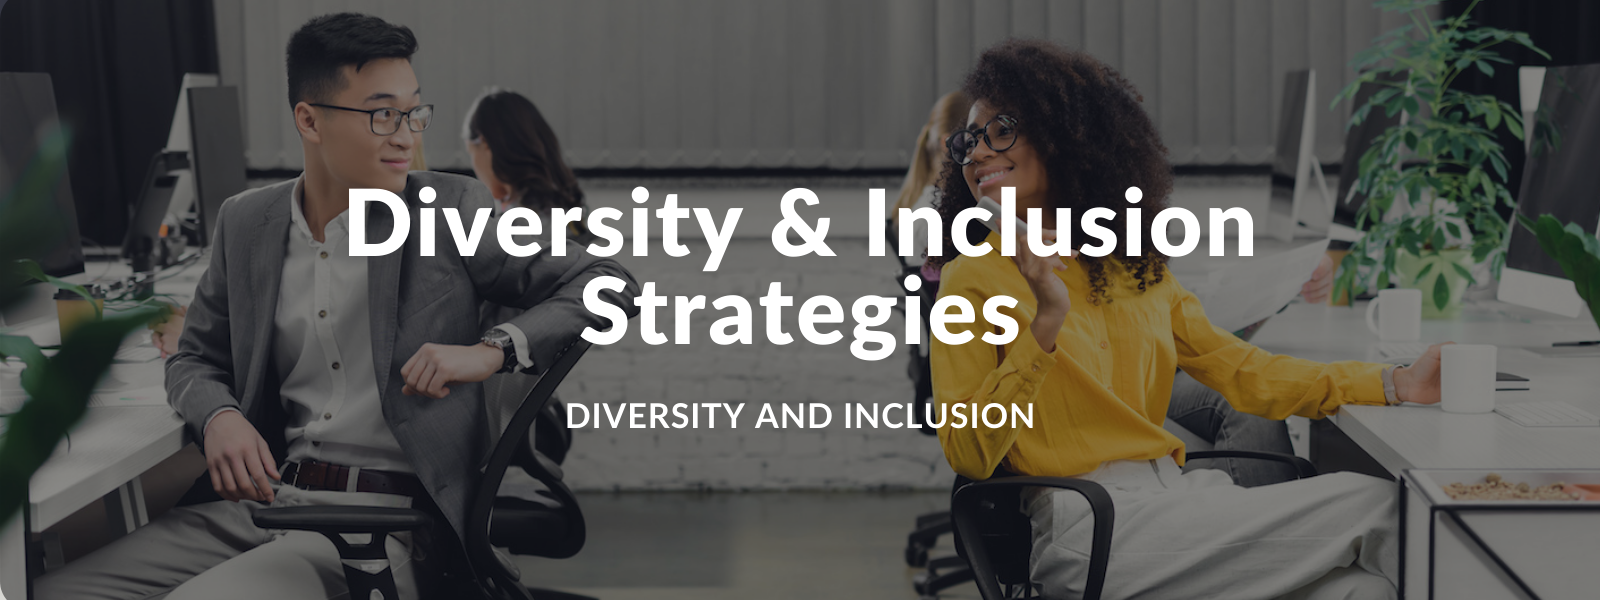 10 Strategies to Build Diversity and Inclusion in the Workplace